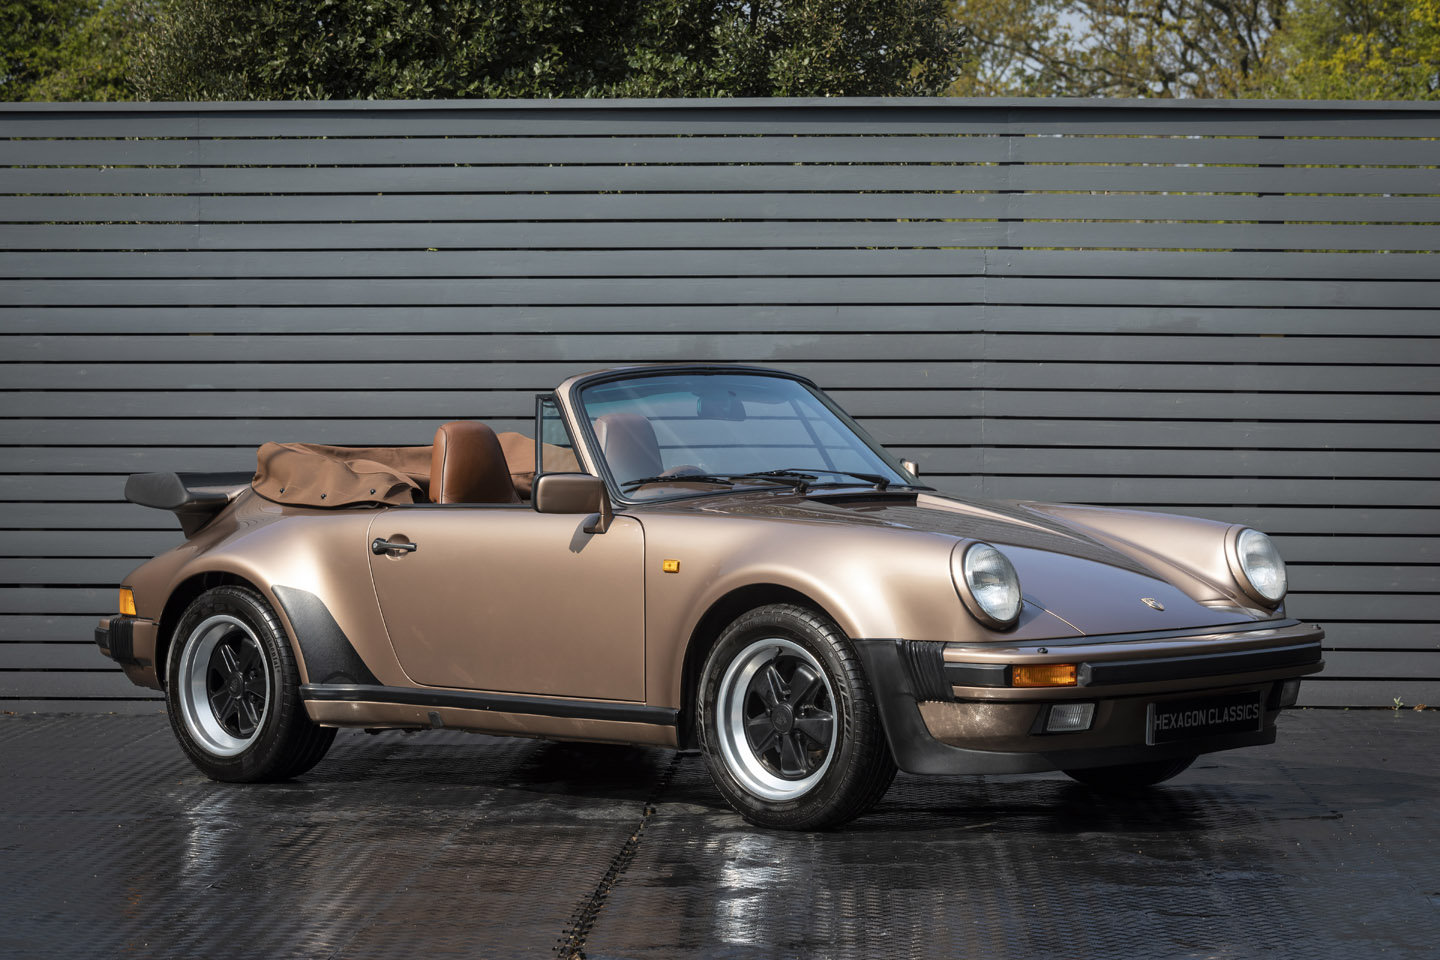 1987 Porsche 911 SSE Cabriolet (G50) Factory Hard Top SOLD (picture 1 of 6)